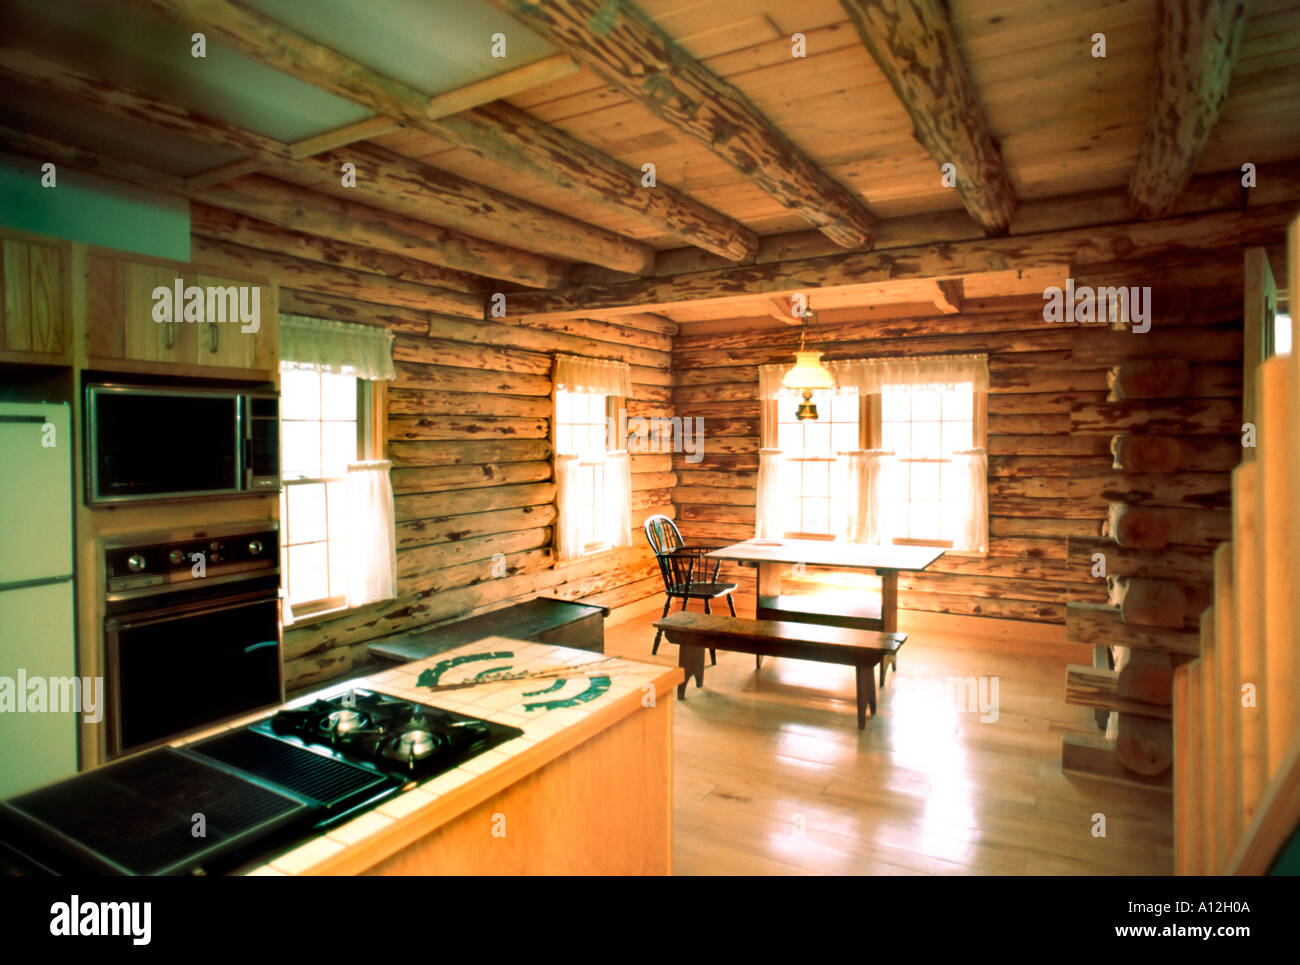 Pittsburgh PA ,USA, American Single Family House, Log Wood House, Interior  Kitchen, New Build Homes